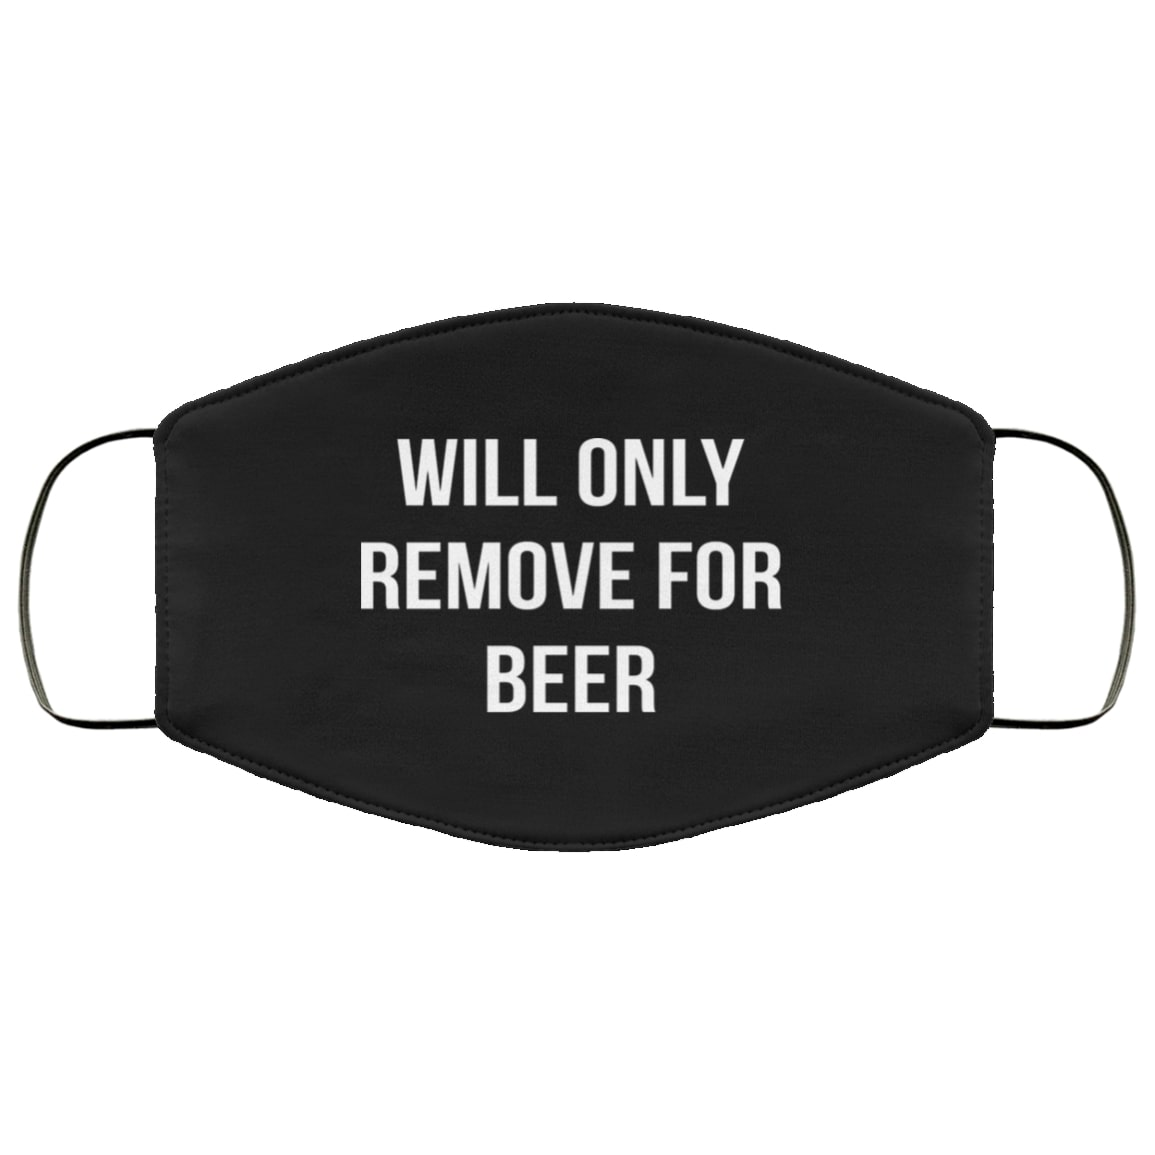 Will only remove for beer anti pollution face mask 2